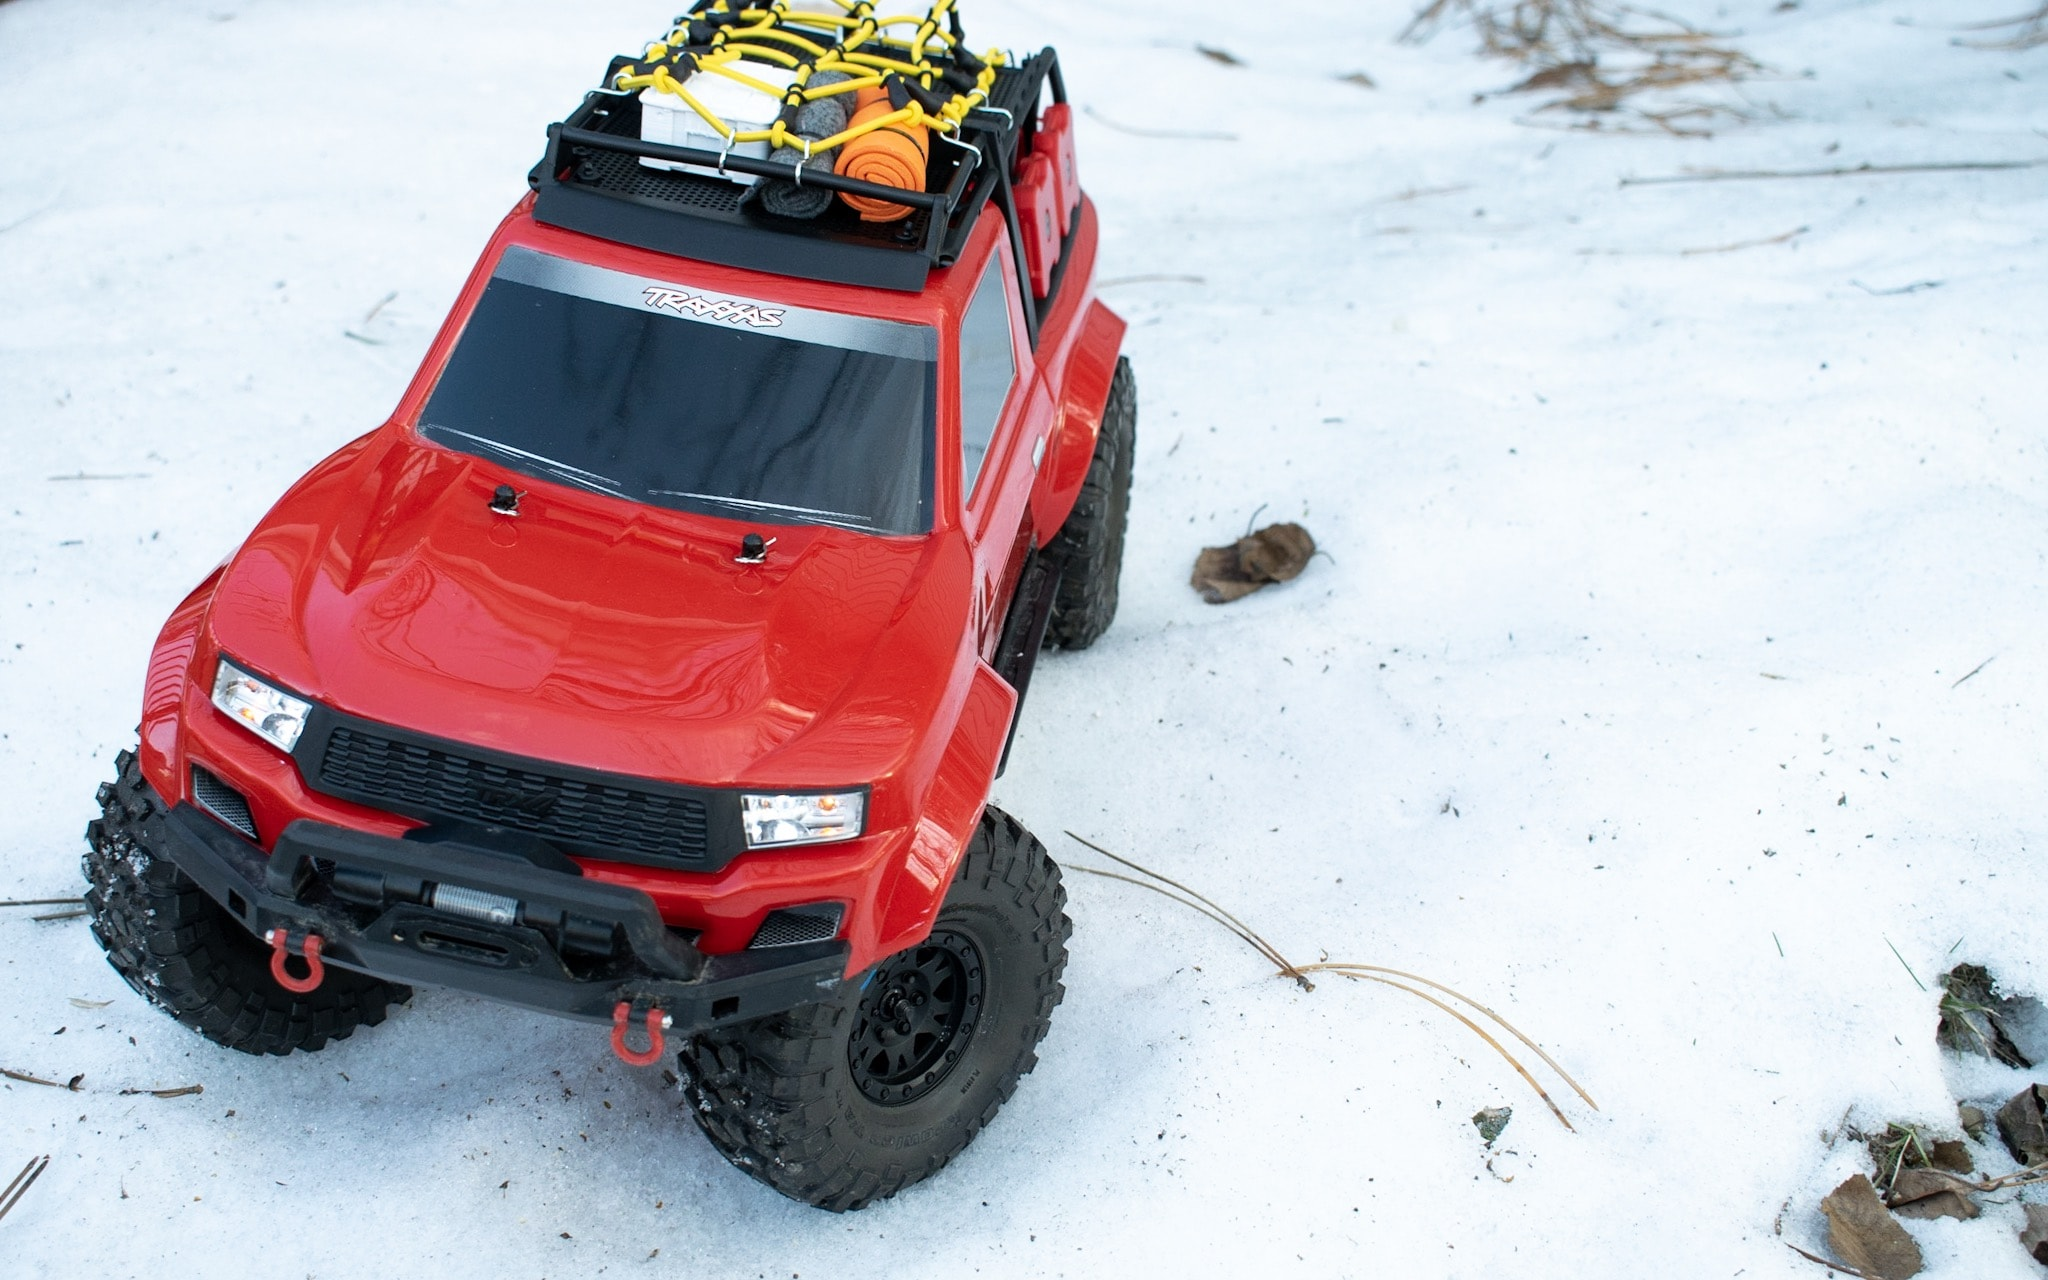 Hands-on with the Traxxas TRX-4 Sport LED Light Kit